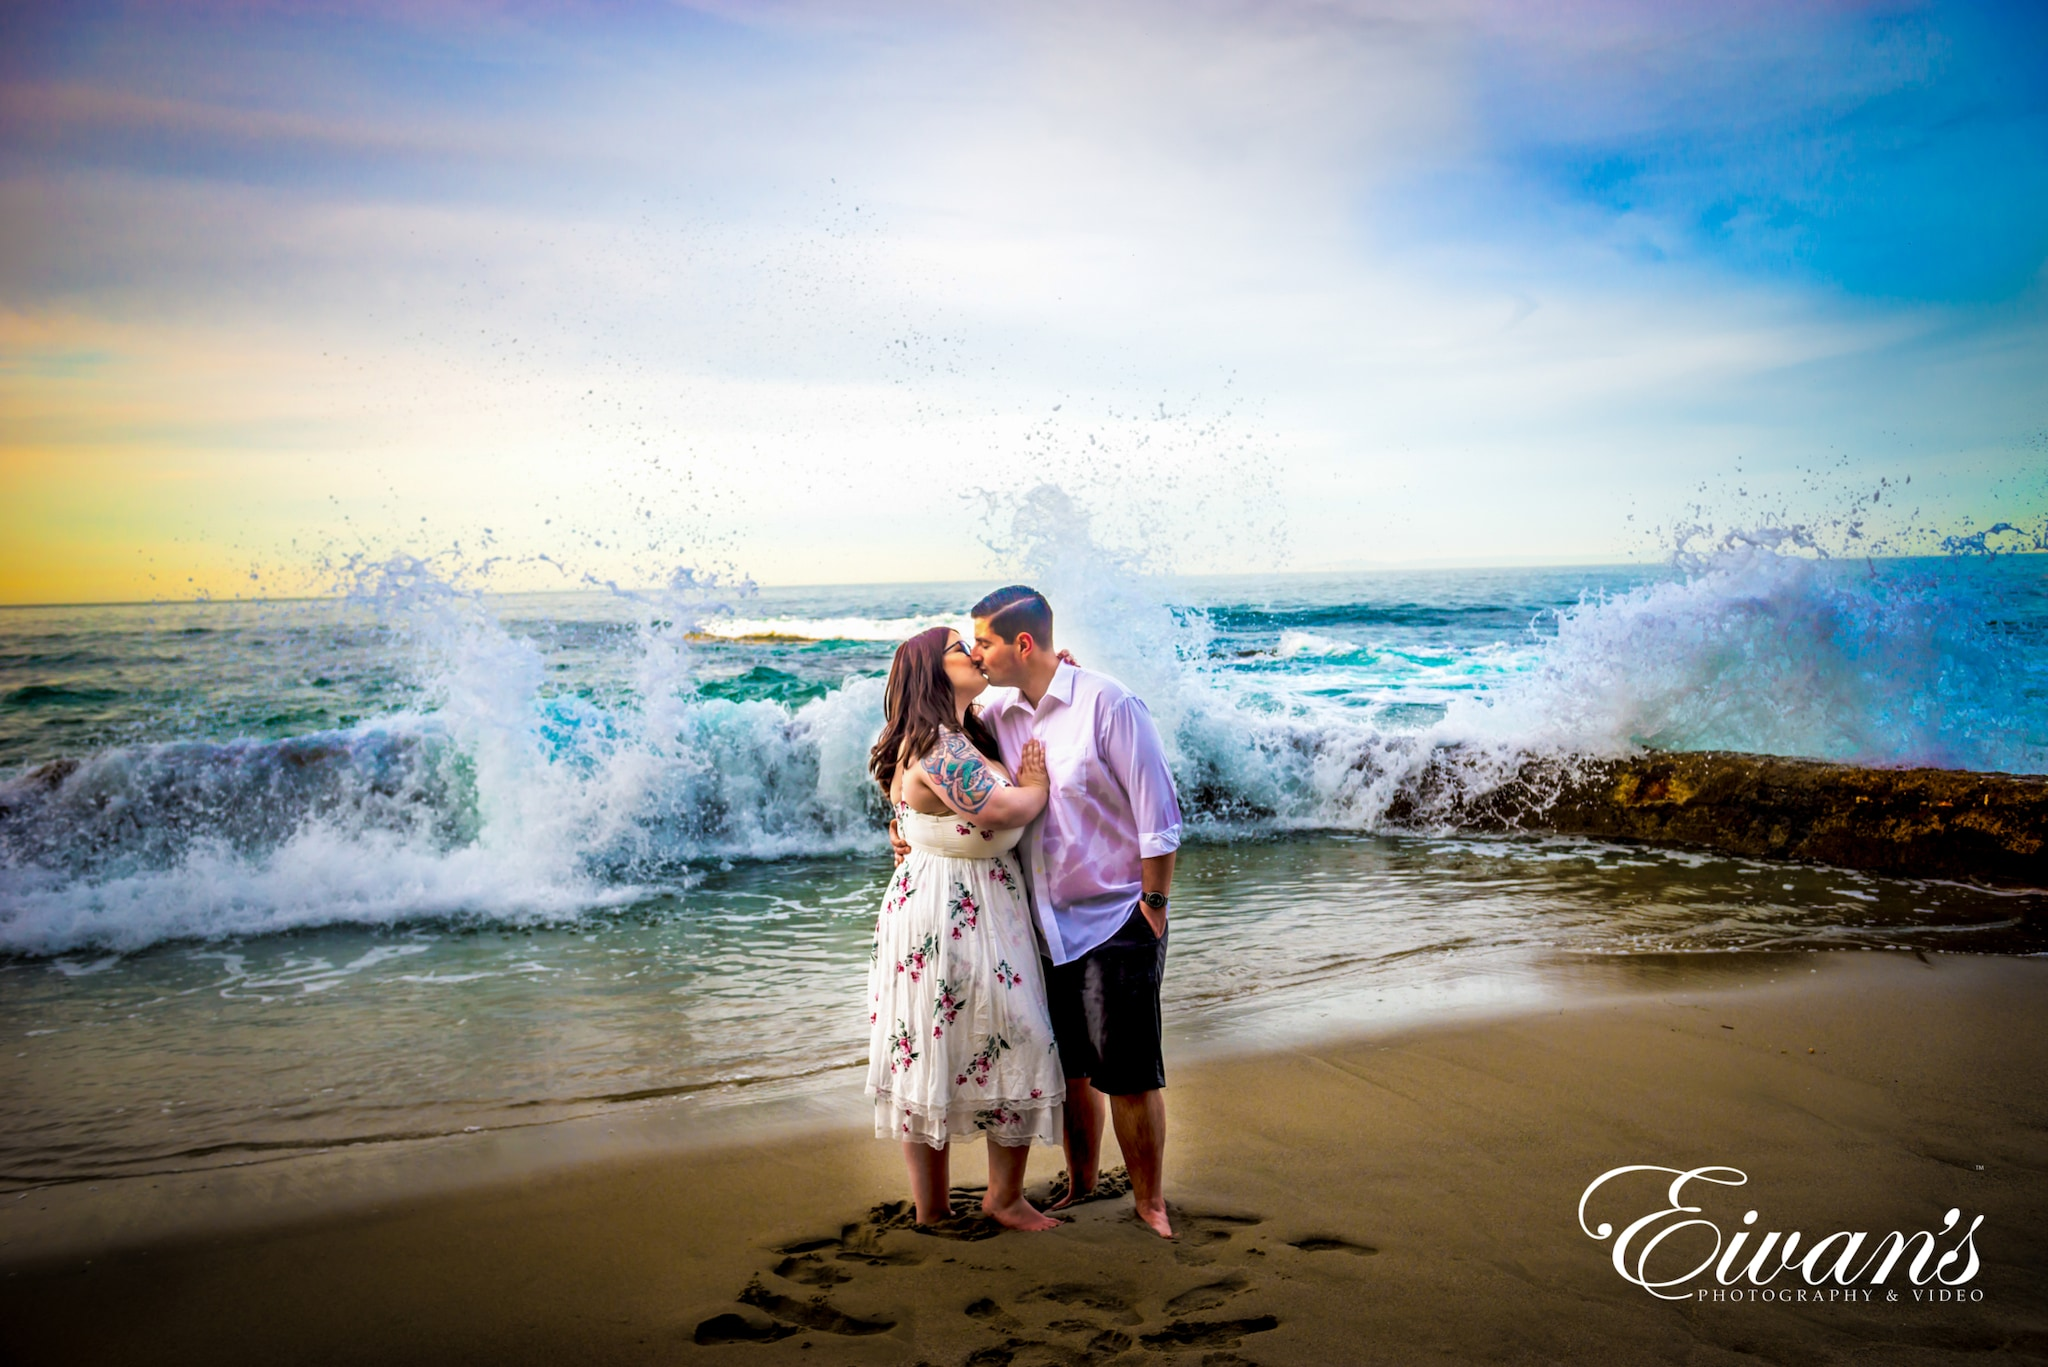 image of an engaged couple in front of waves